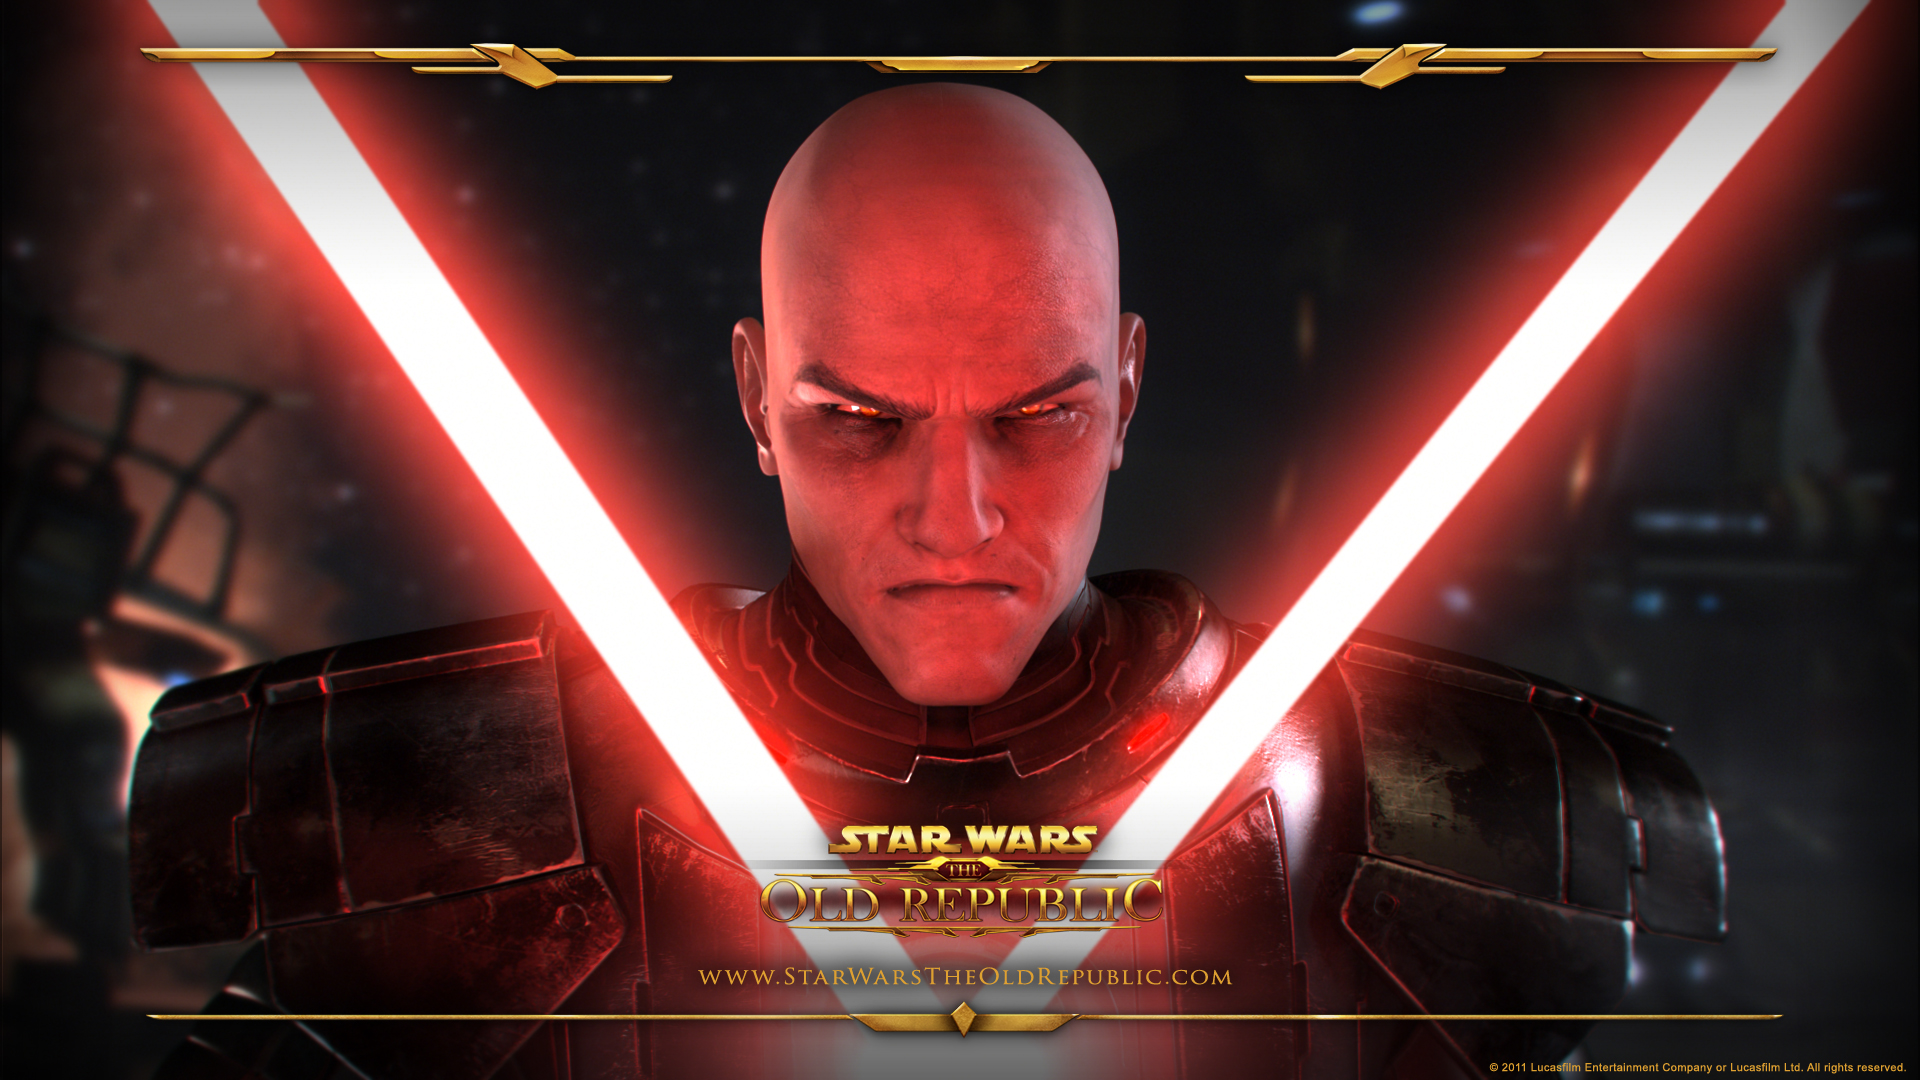 Star Wars the Old Republic wallpaper 3